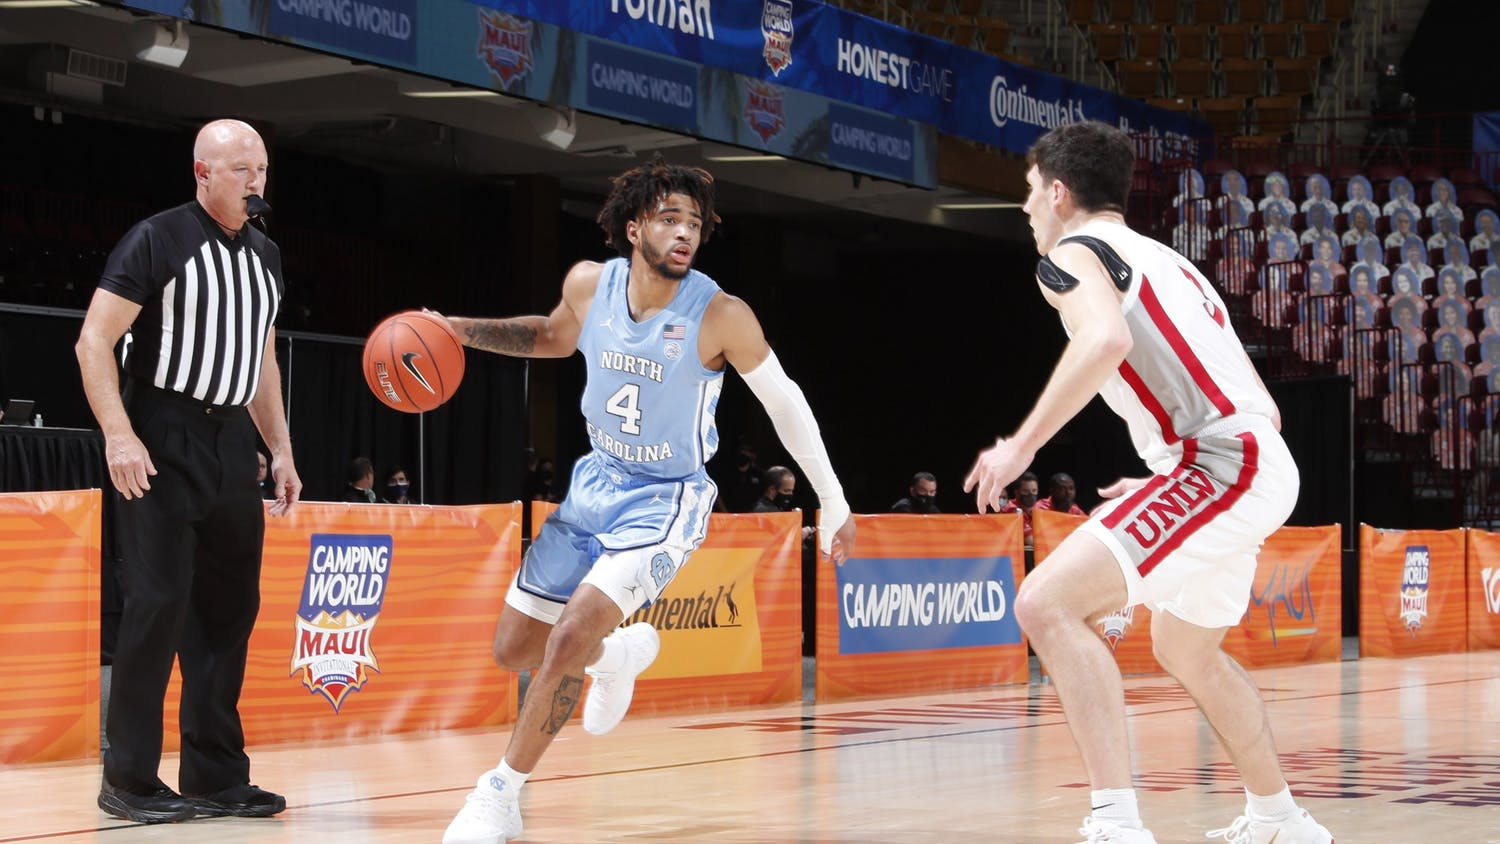 UNC first year guard RJ Davis (4) dribbles the ball during the first round of the Maui Invitational Tournament against UNLV on Monday, Nov. 30, 2020 in Asheville, N.C. UNC beat UNLV 78-51. Photo courtesy of Brian Spurlock/Camping World Maui Invitational.